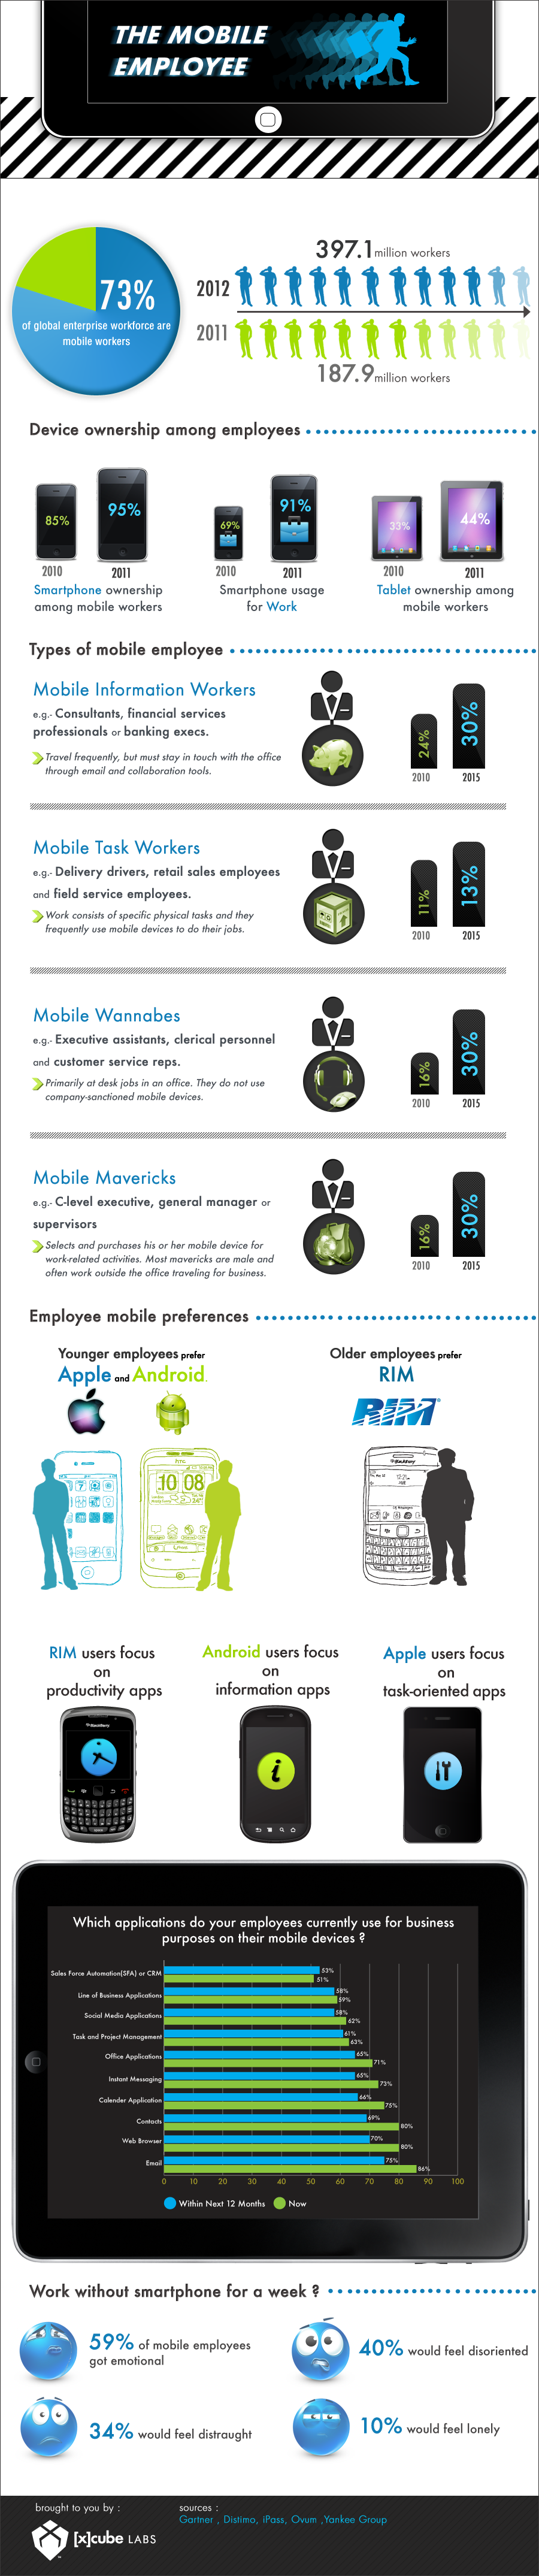 The Mobile Employee